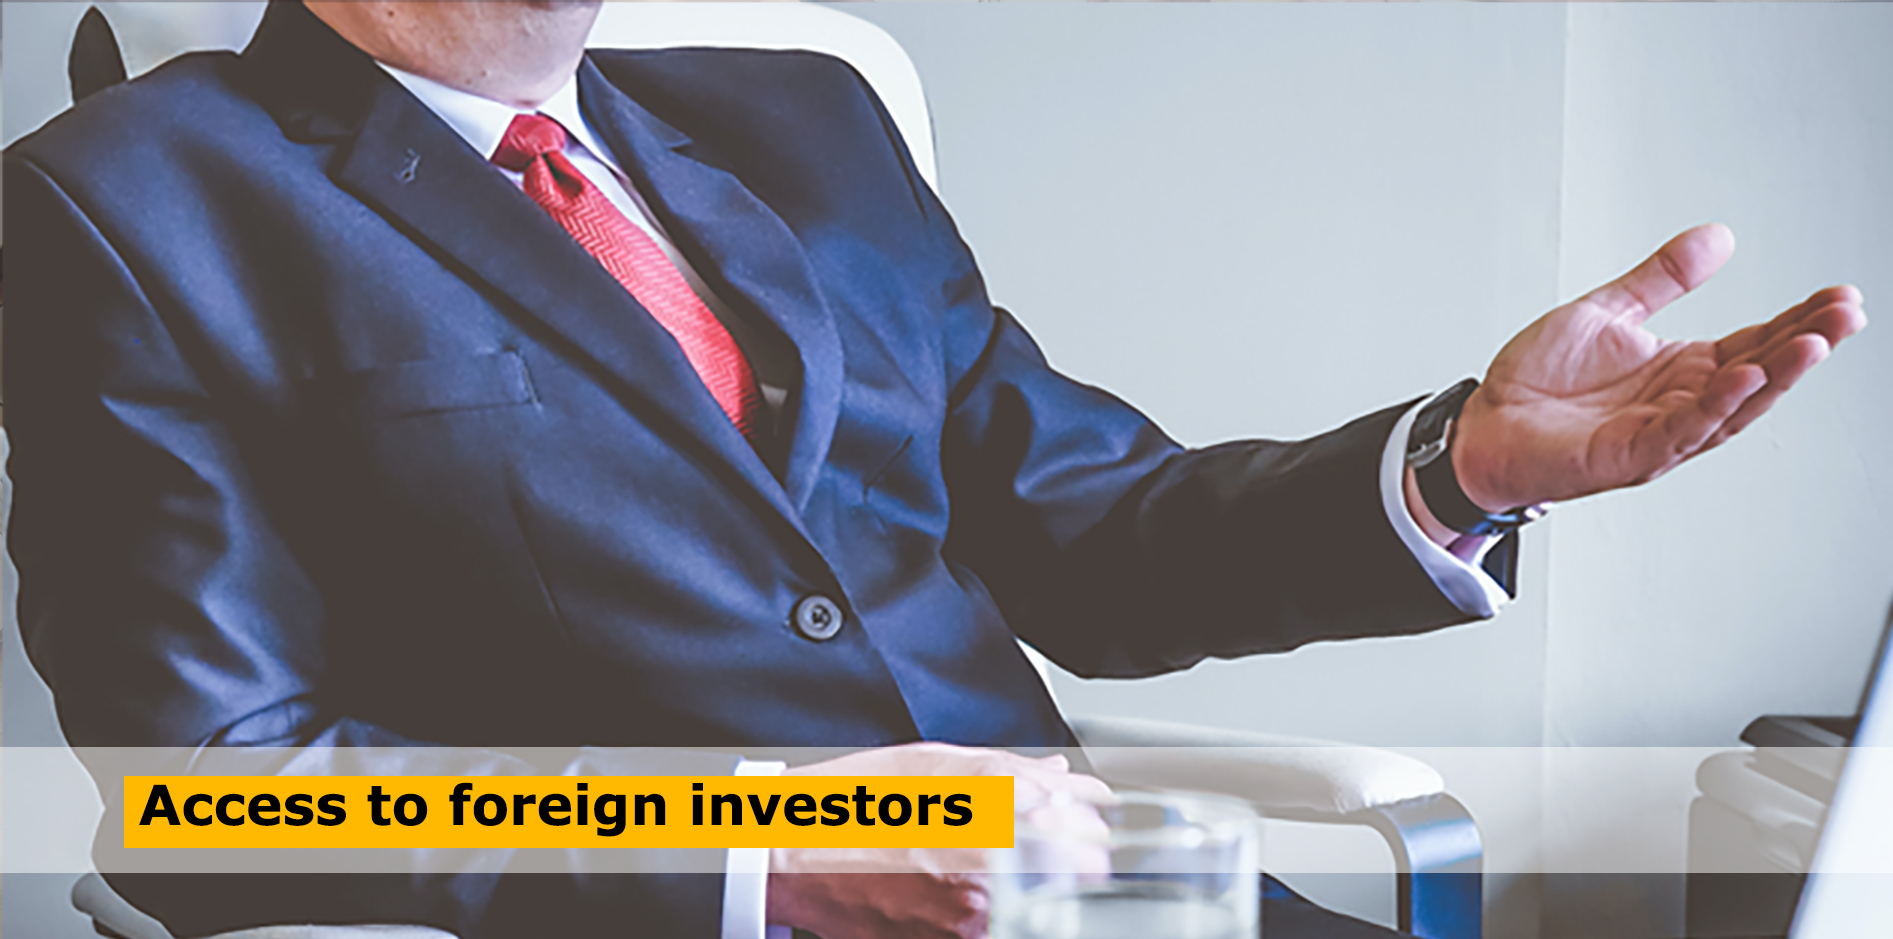 Access to foreign investors